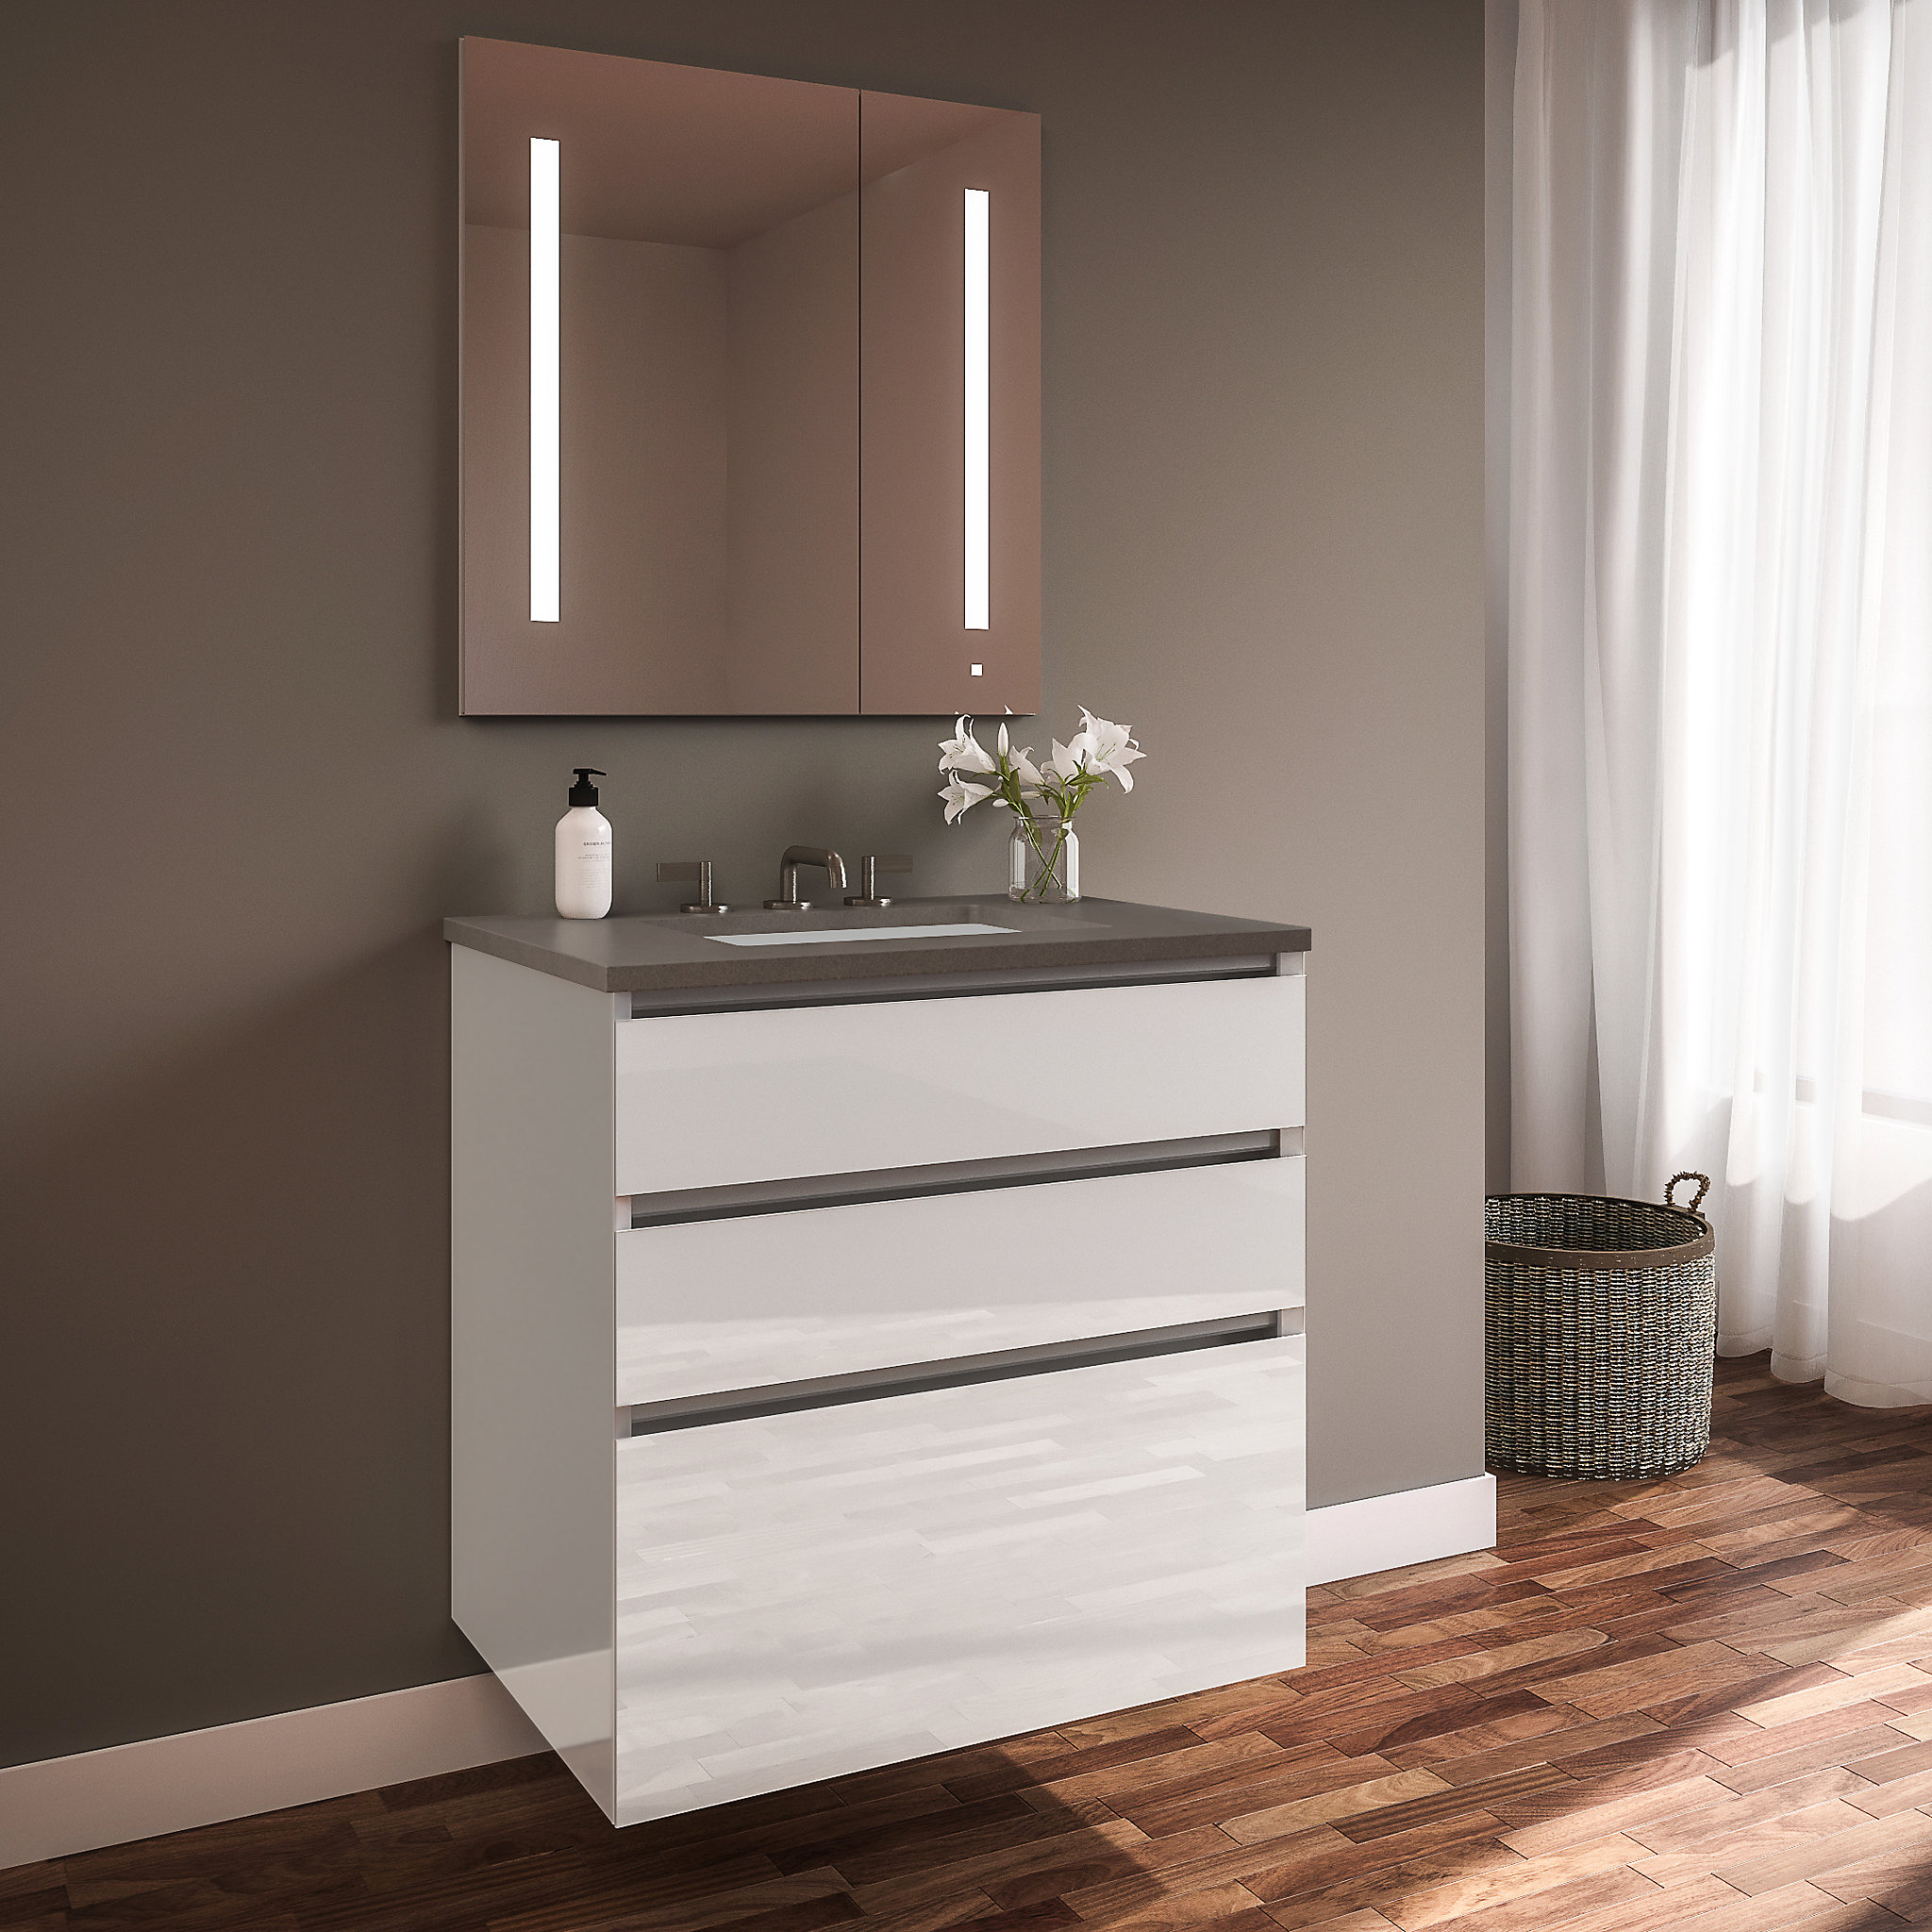 "Robern 30219100NB00003 Curated Cartesian Vanity, 30"" x 7-1/2"" x 21"", 24"" x 15"" x 21"", Three Drawer, White Glass, Tip Out Drawer,"